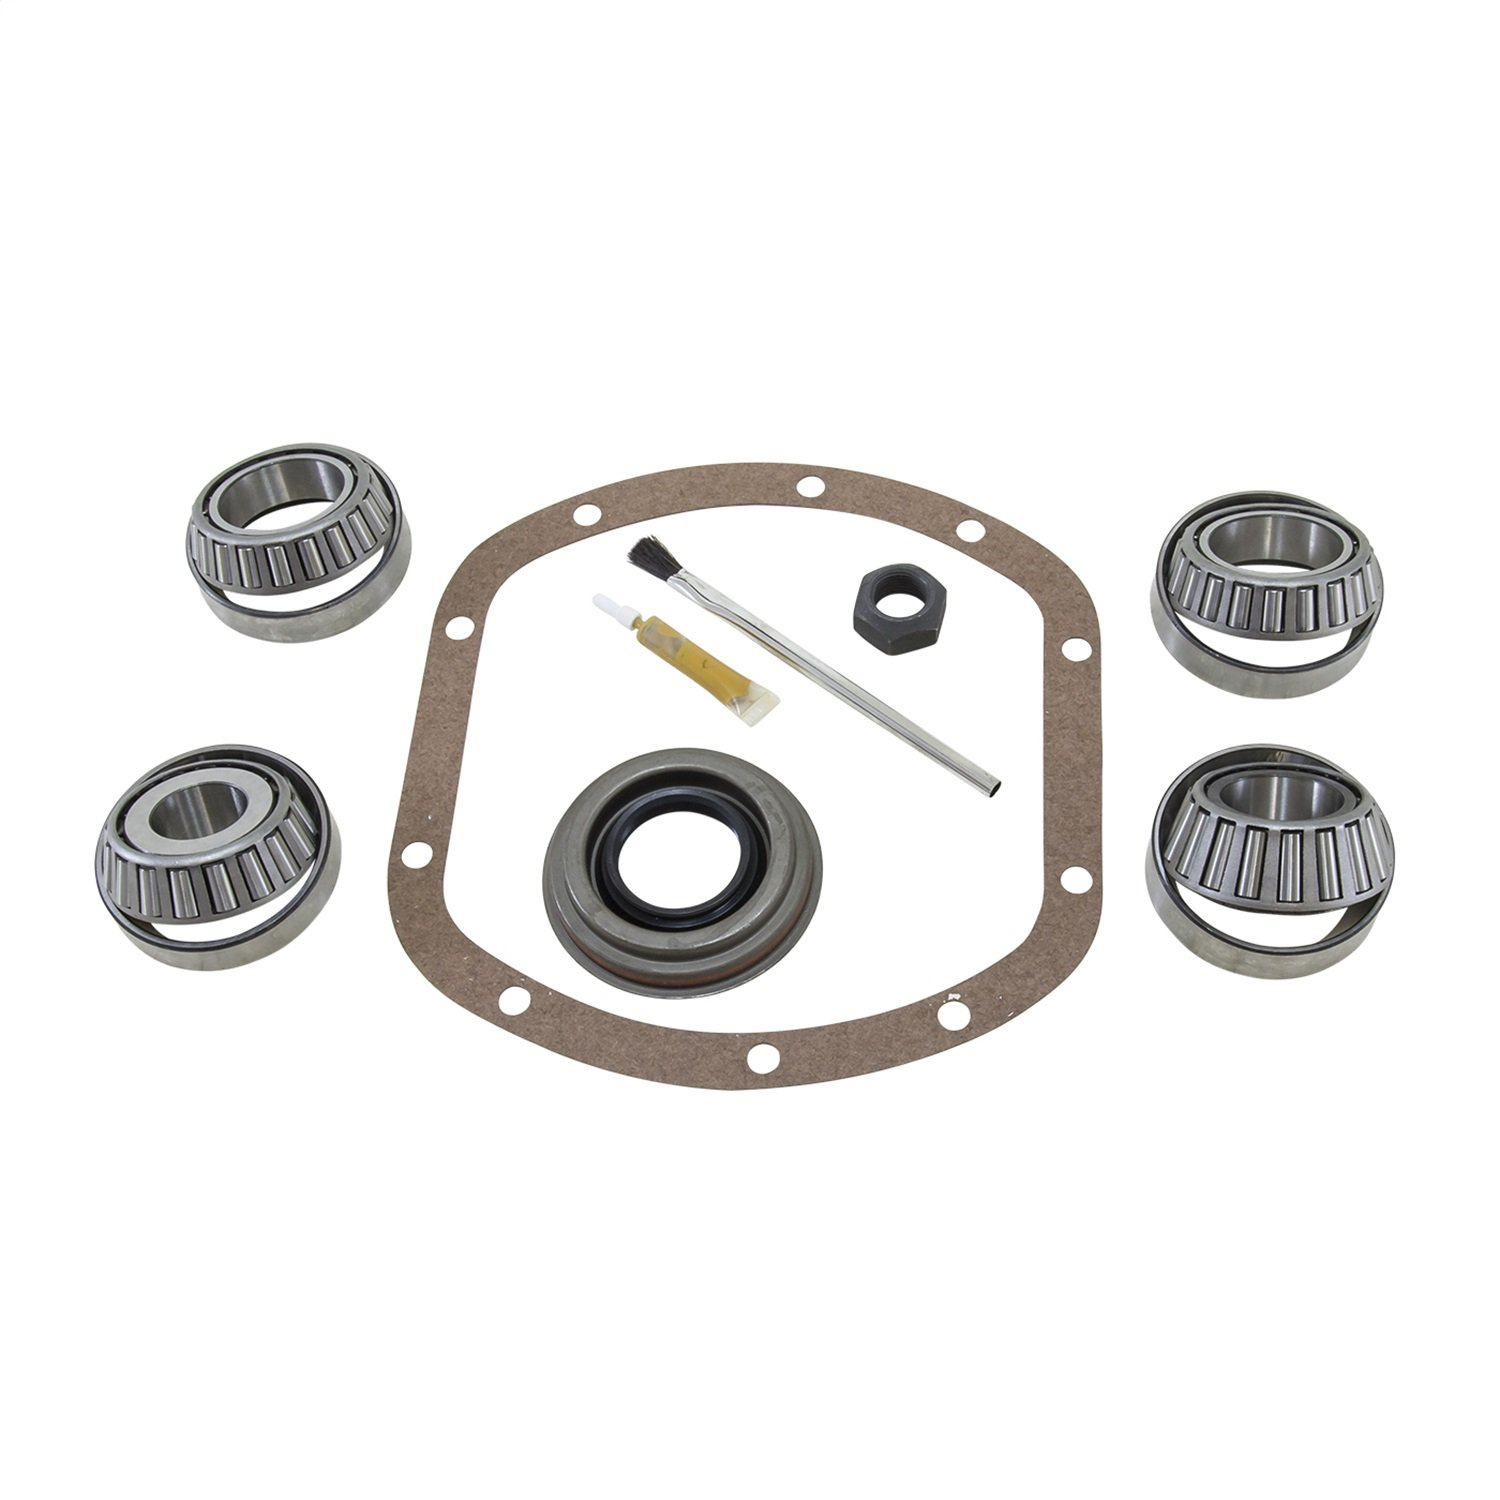 USA Standard Gear (ZBKD30-F) Bearing Kit for Dana 30 Front Differential